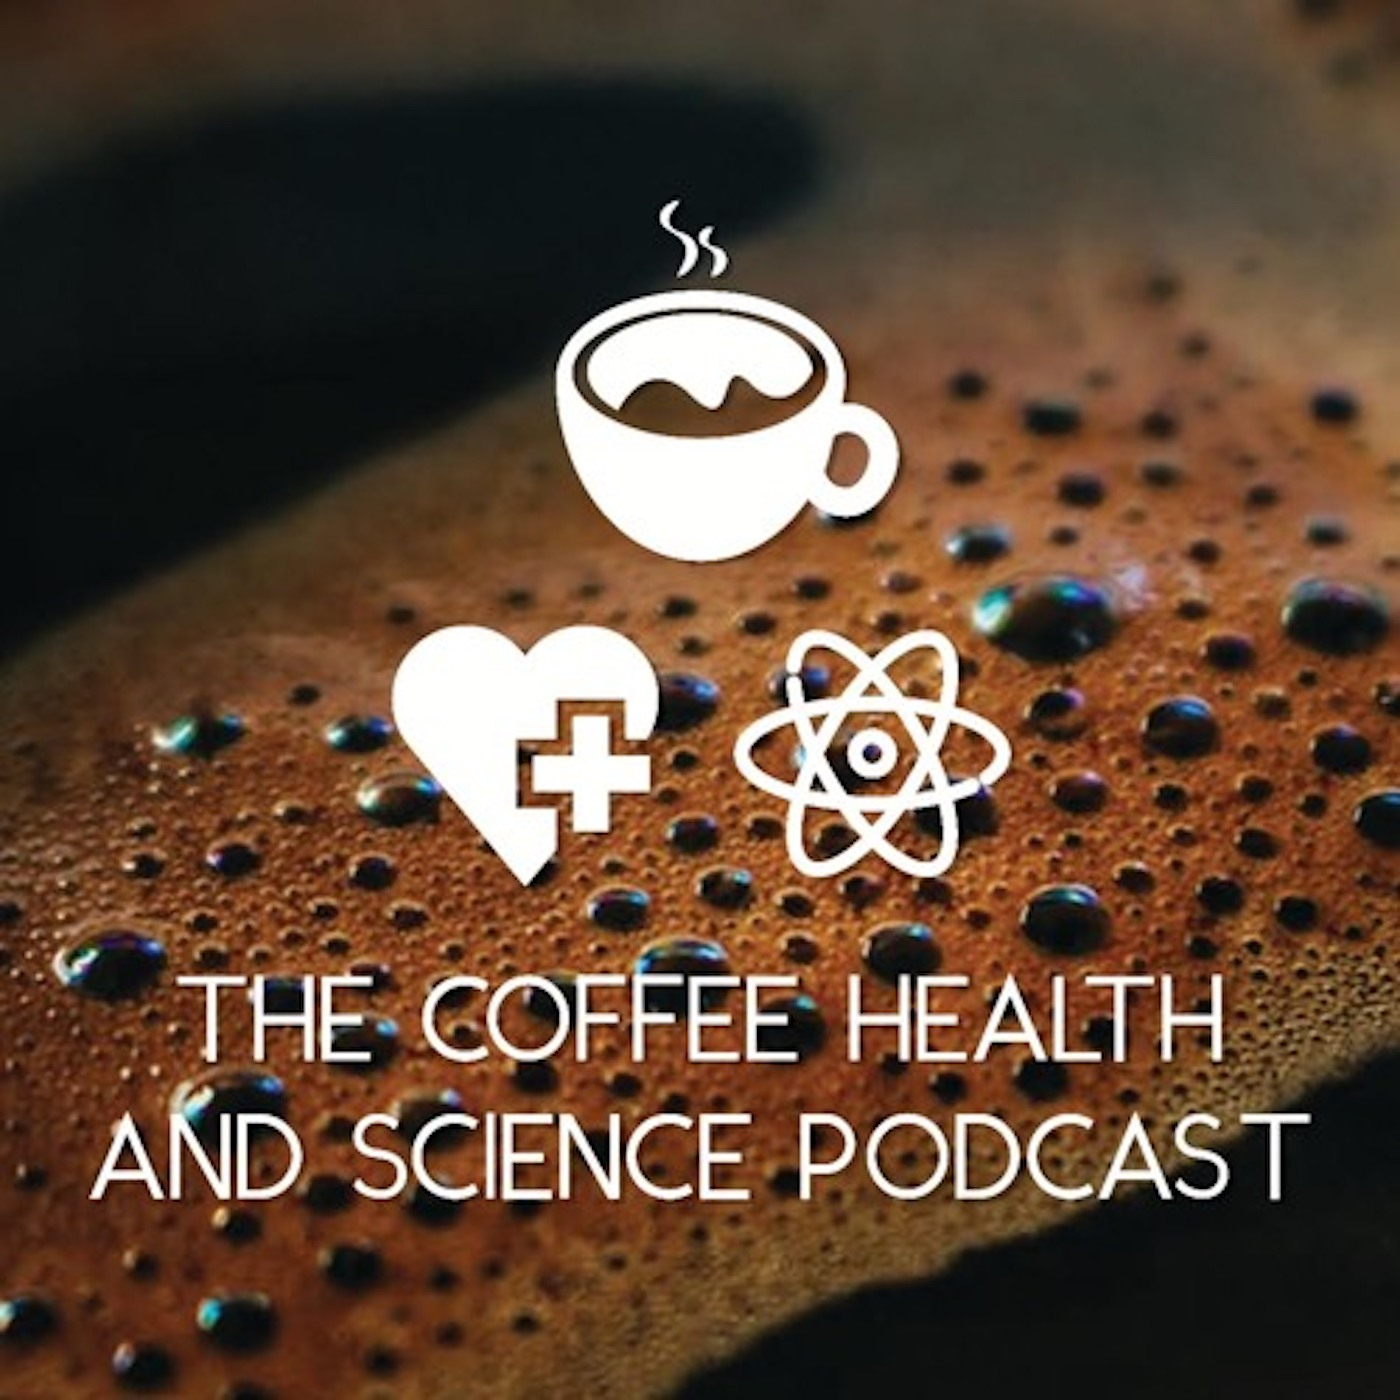 Cancer and Coffee, Sugary Coffee Drinks, Brewing for Health, and More, with Doctor Coffee